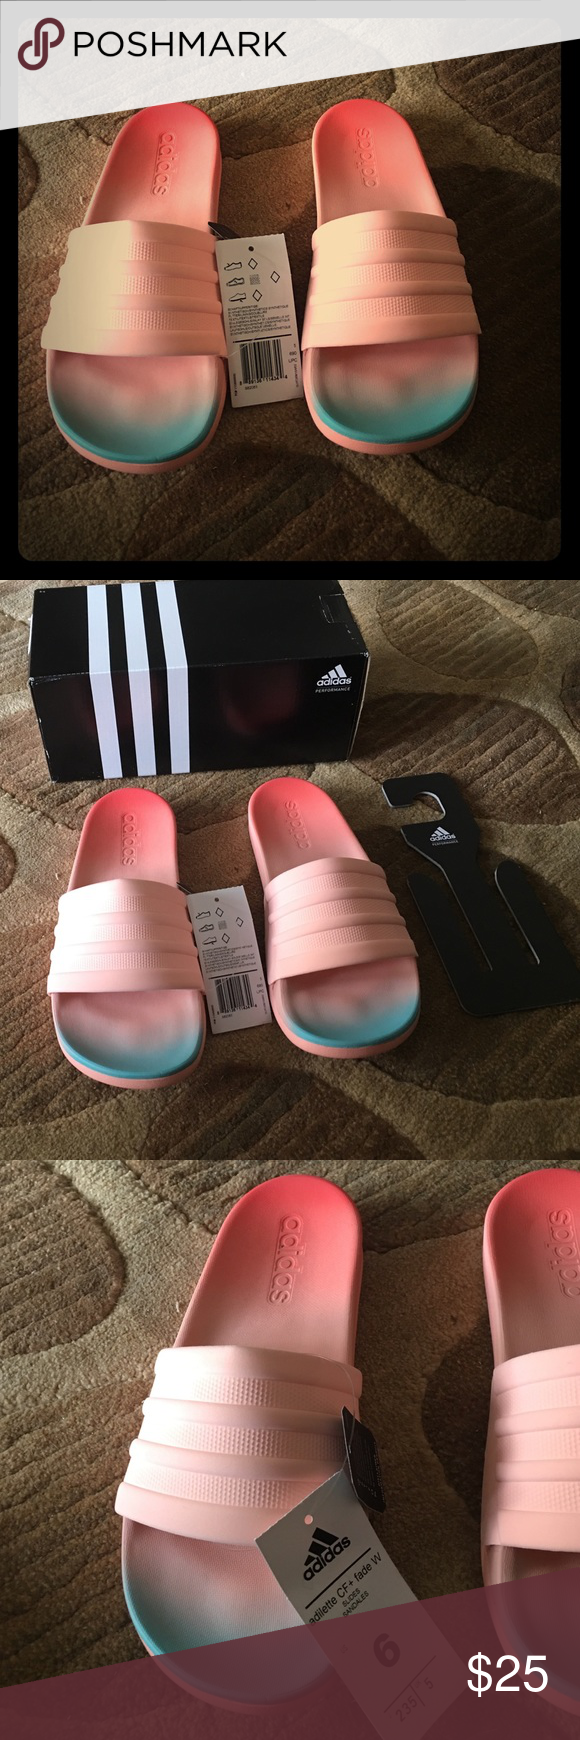 12839d90067a Womens adilette cloud foam fade slide sandals Brand new Womens Adidas cloud  foam fade slide sandals (new with tags and box). Color  Easy coral haze  coral.